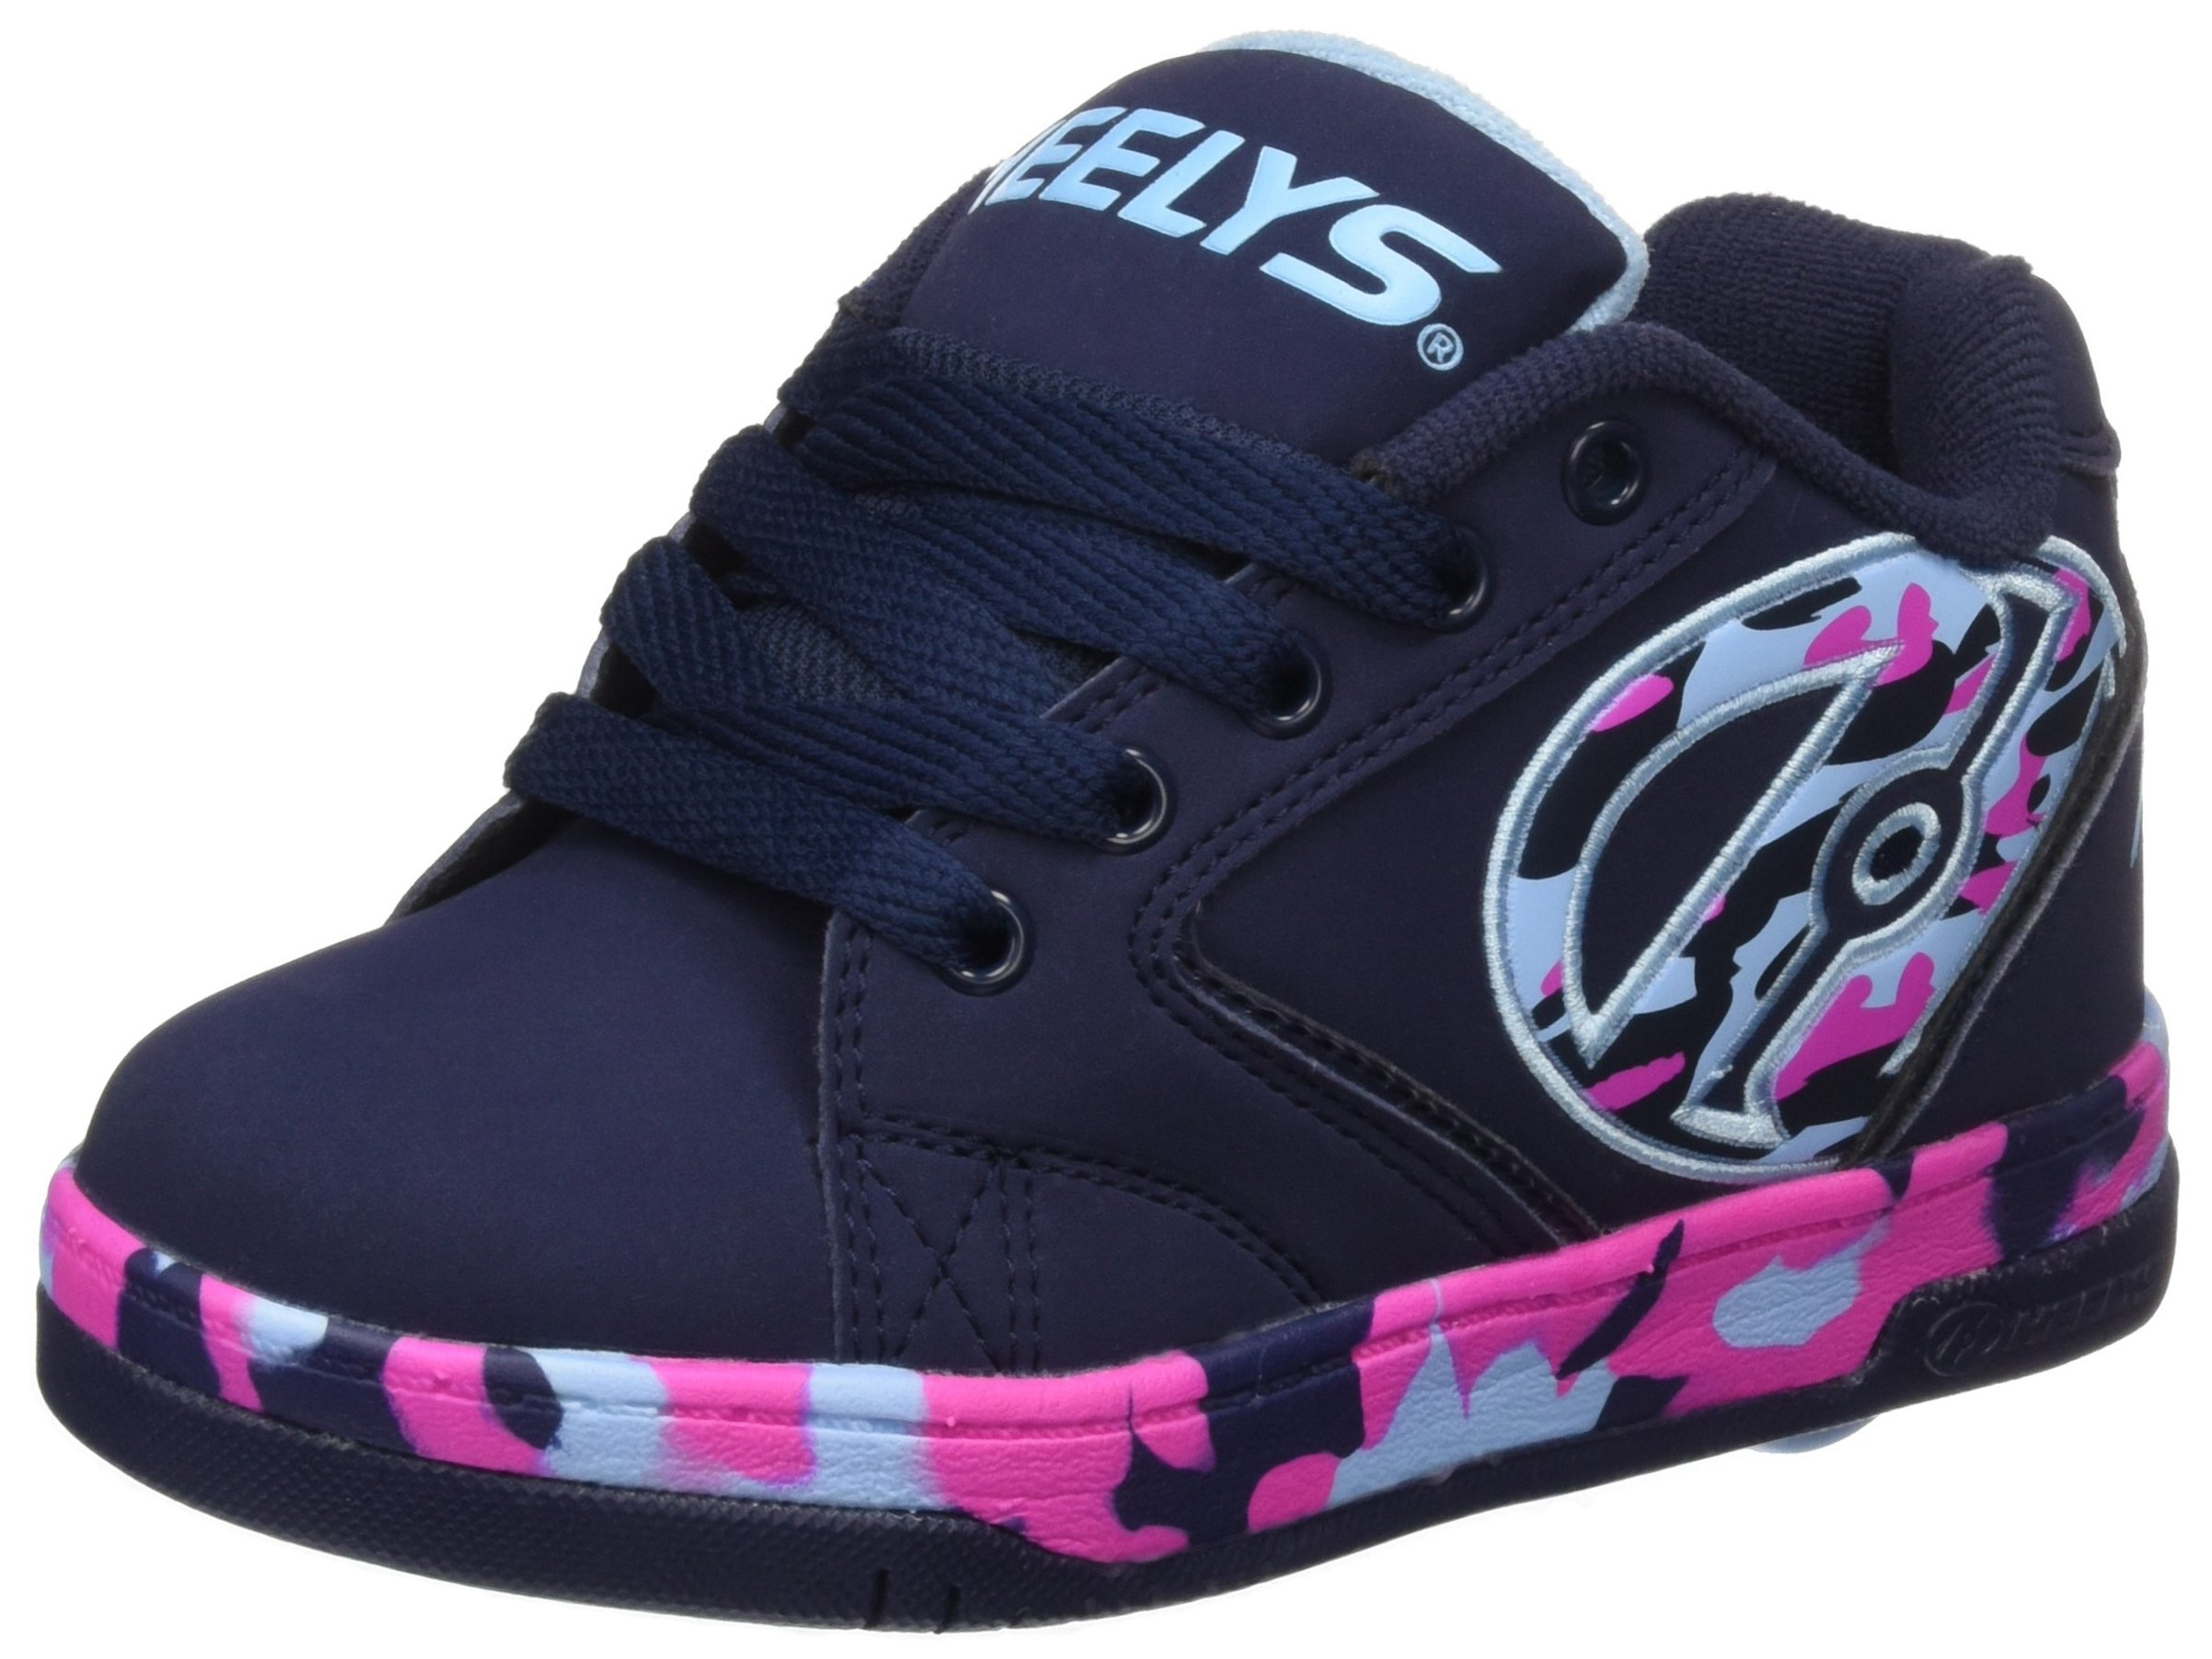 Heelys Girl's Propel 2.0 (Little Kid/Big Kid/Adult) Navy/Pink/Light Blue/Confetti Sneaker 9 Women's M